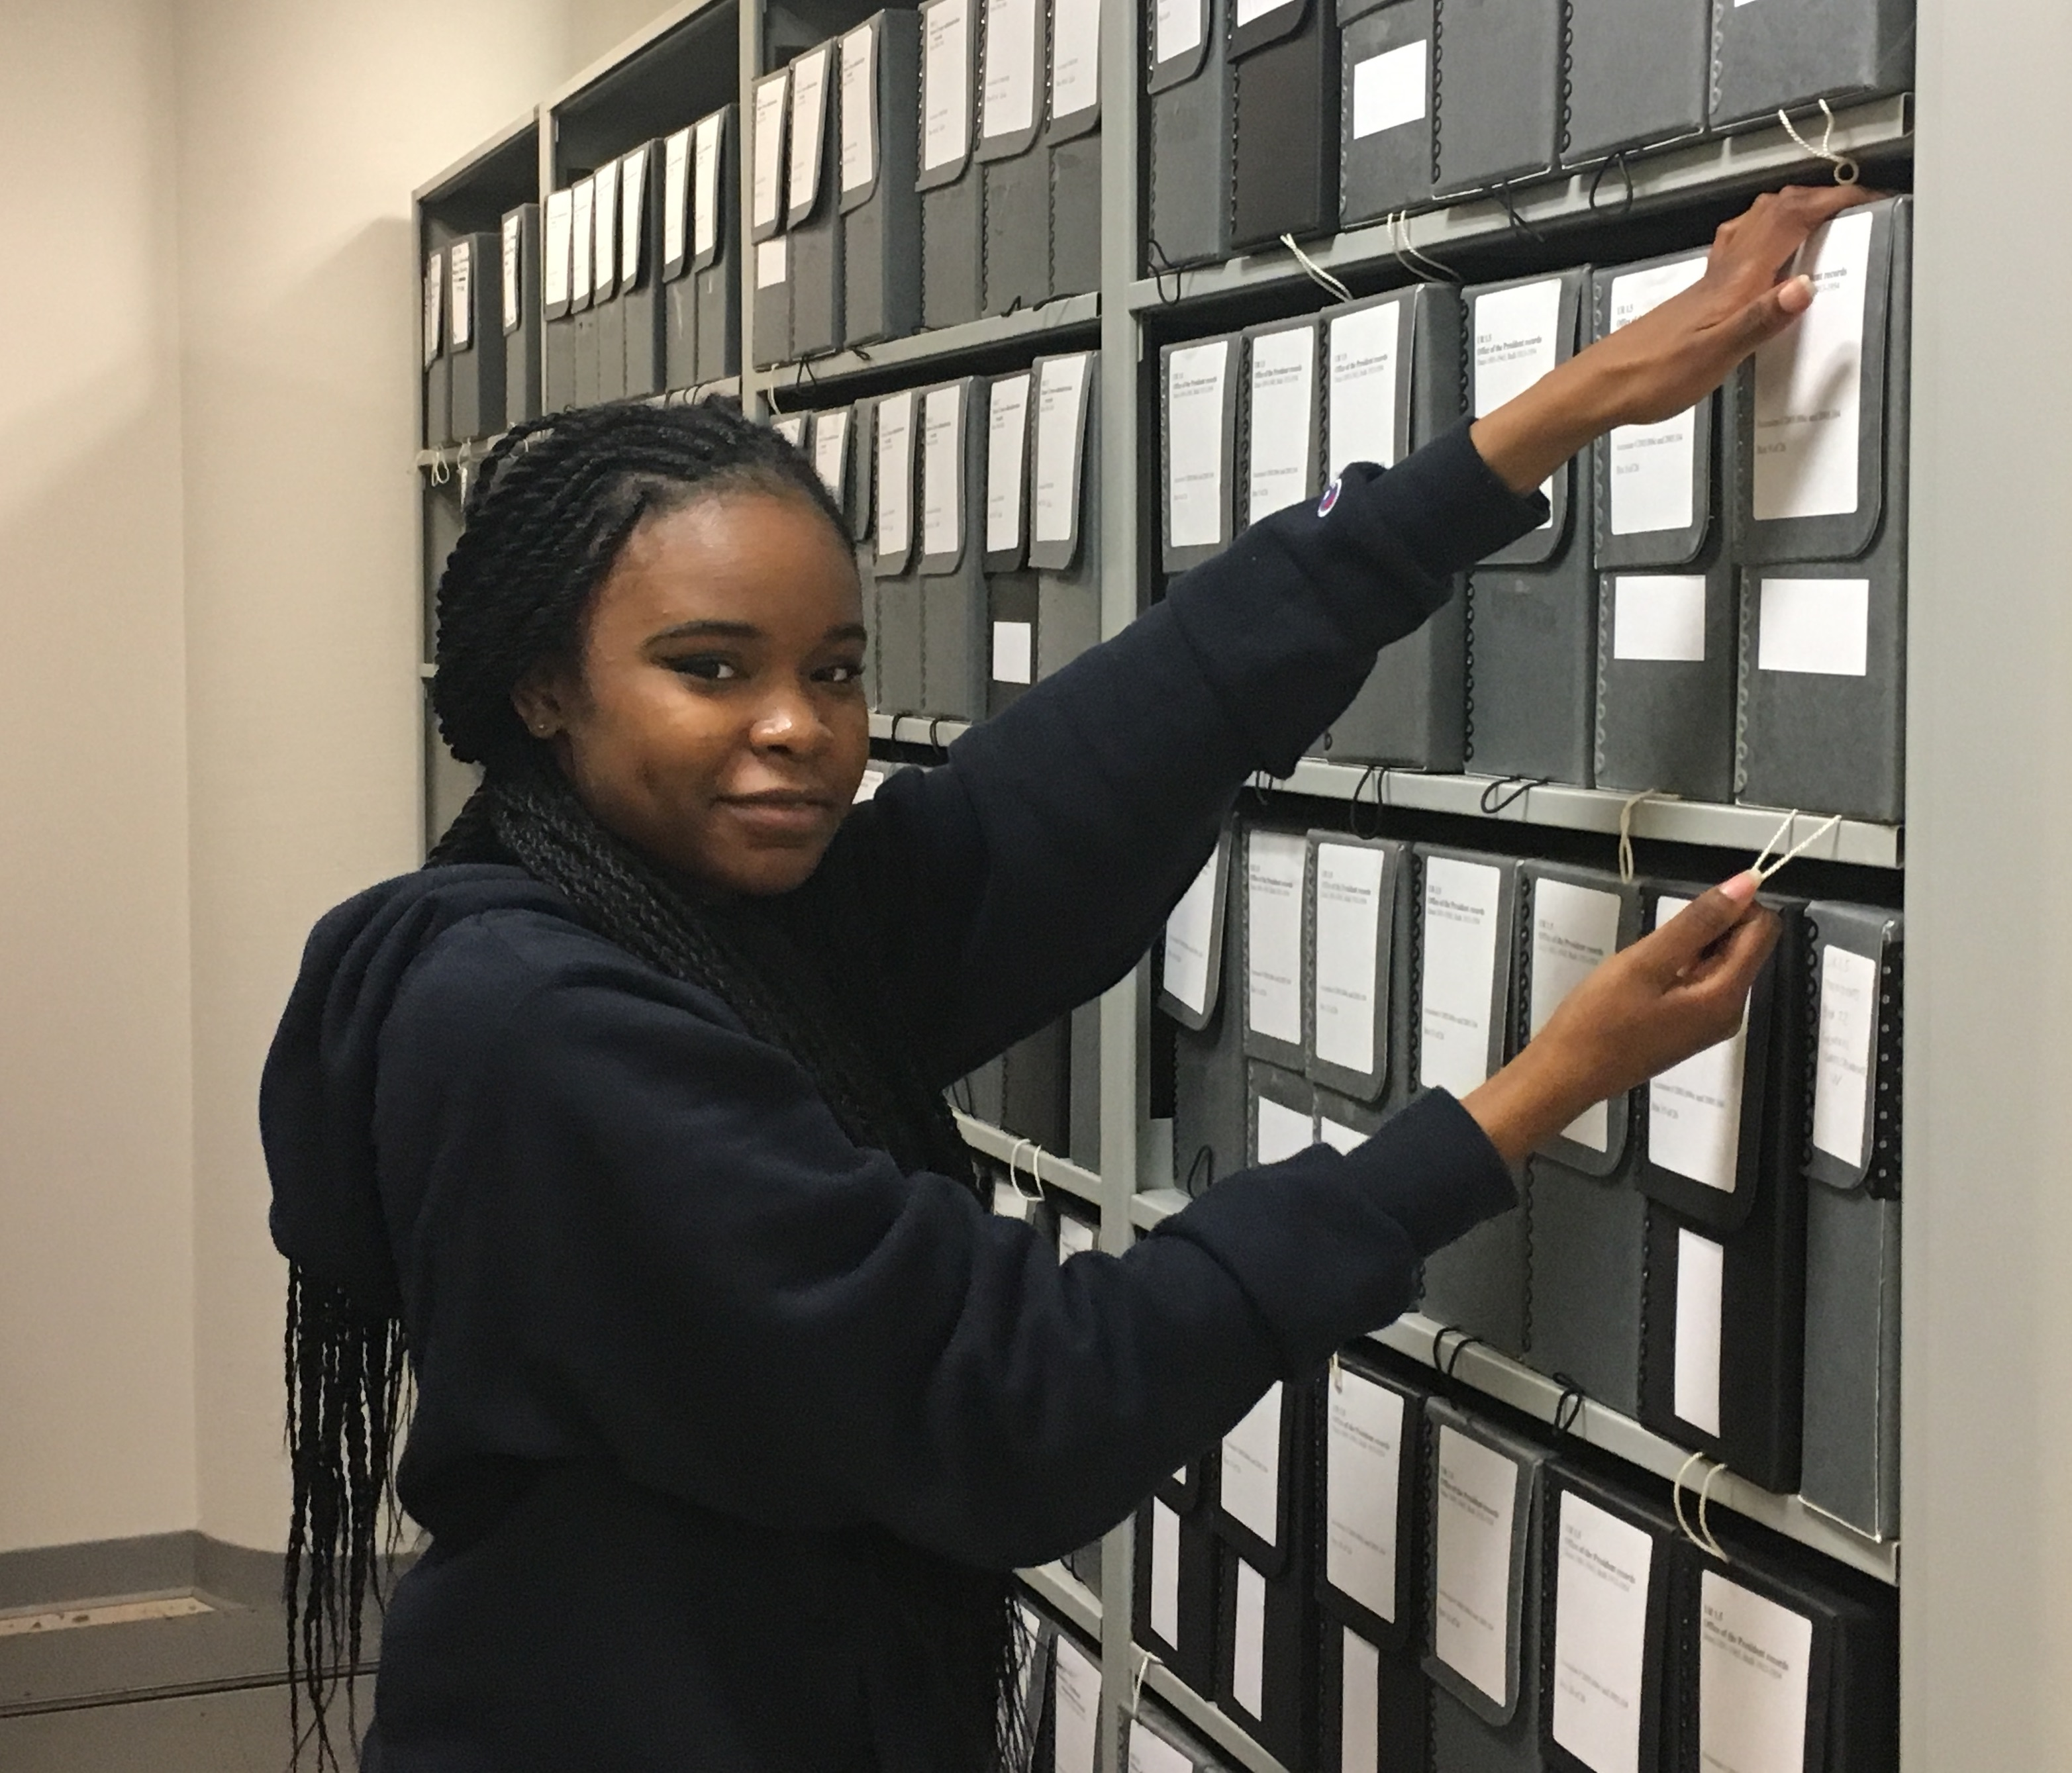 A young woman poses in front of shelves lined with folders of archival materials